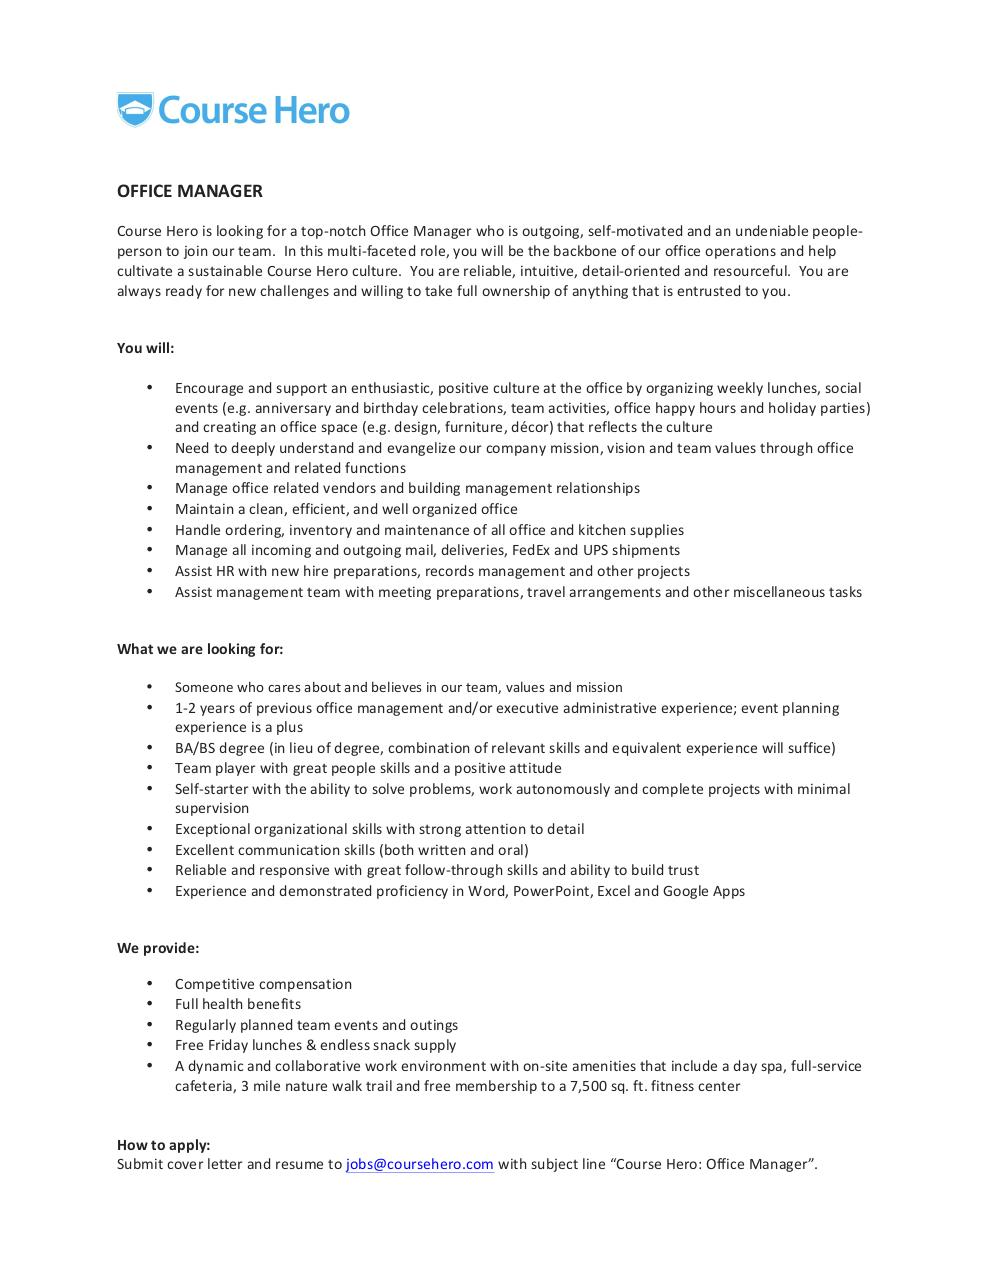 microsoft word office manager job description docx work autonomously and complete projects minimal supervision exceptional organizational skills strong attention to detail excellent